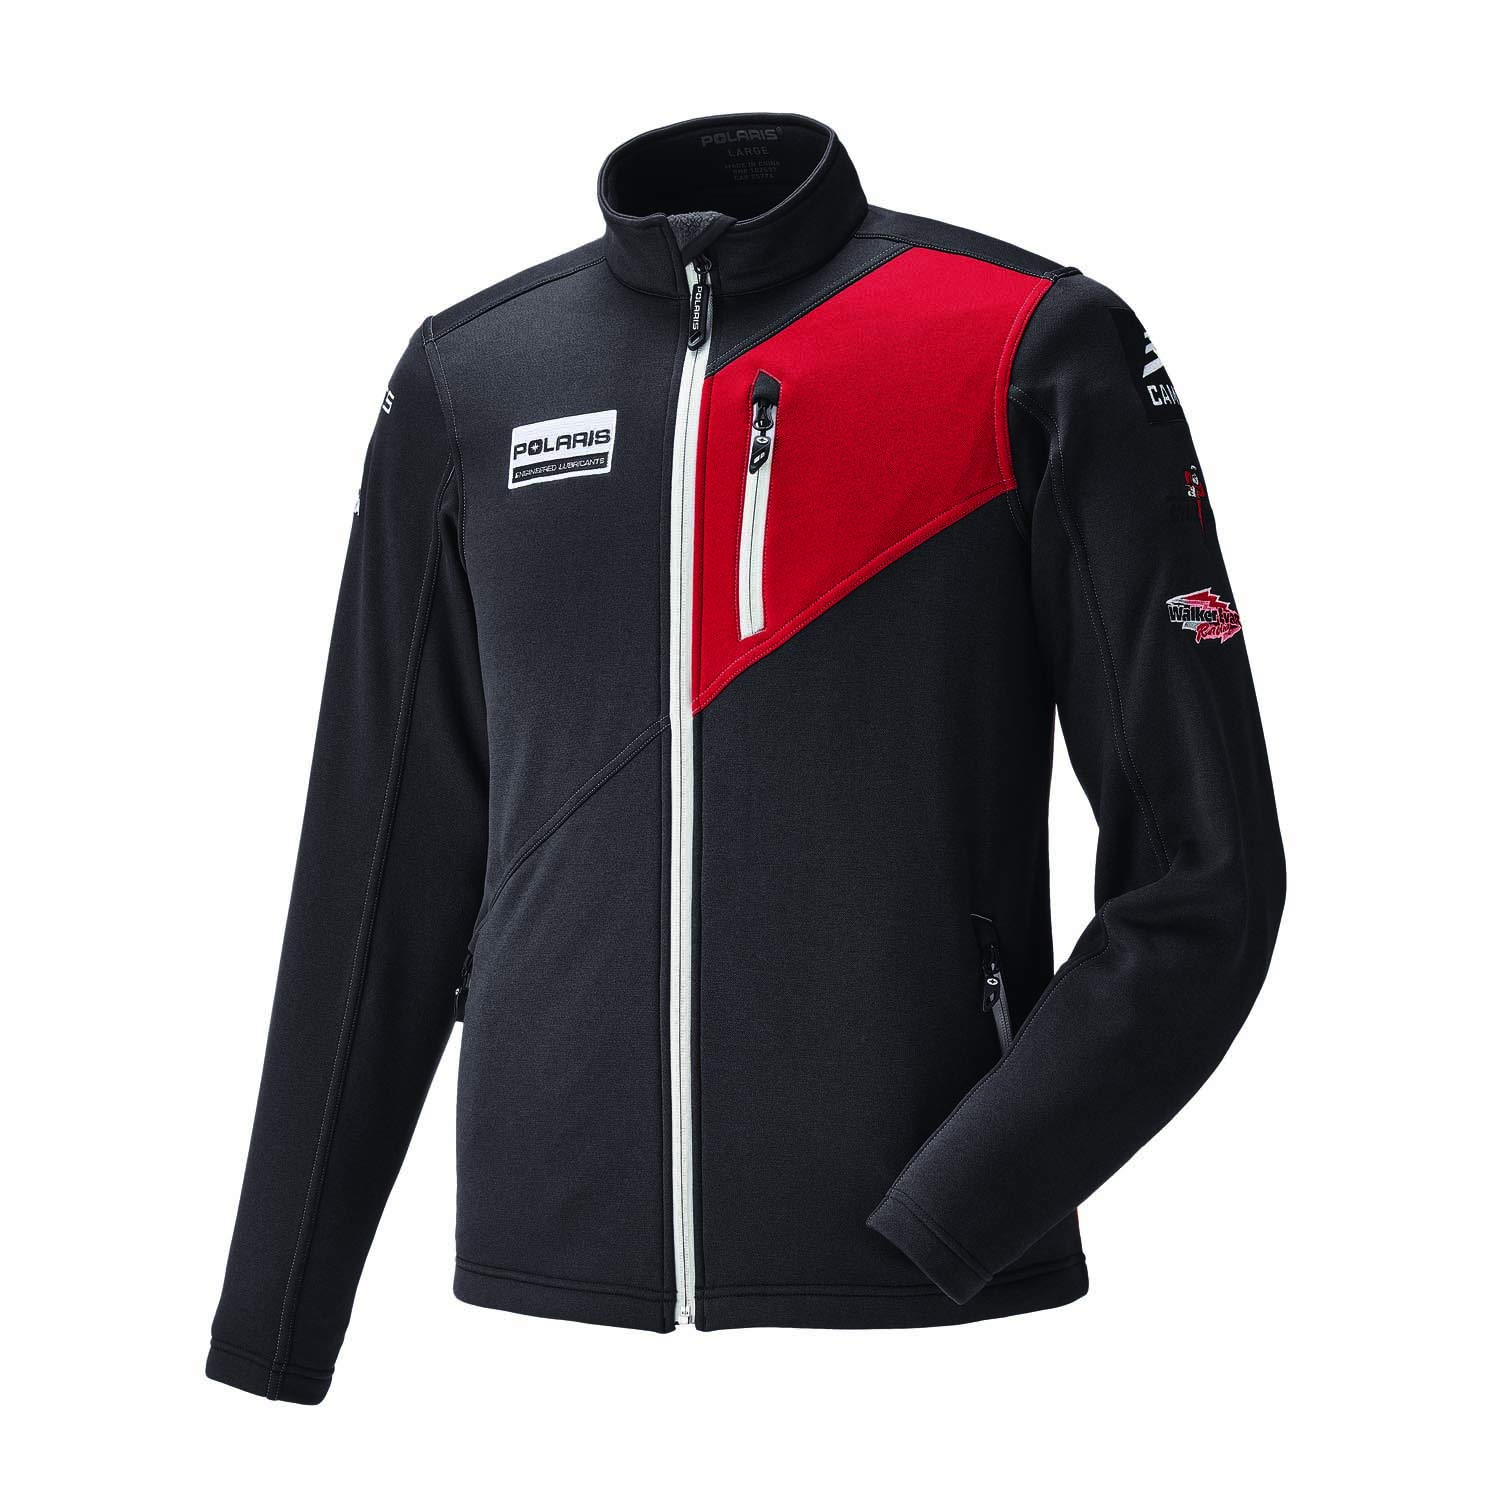 Polaris Men's Race Tech Full Zip - Size XL 286953309